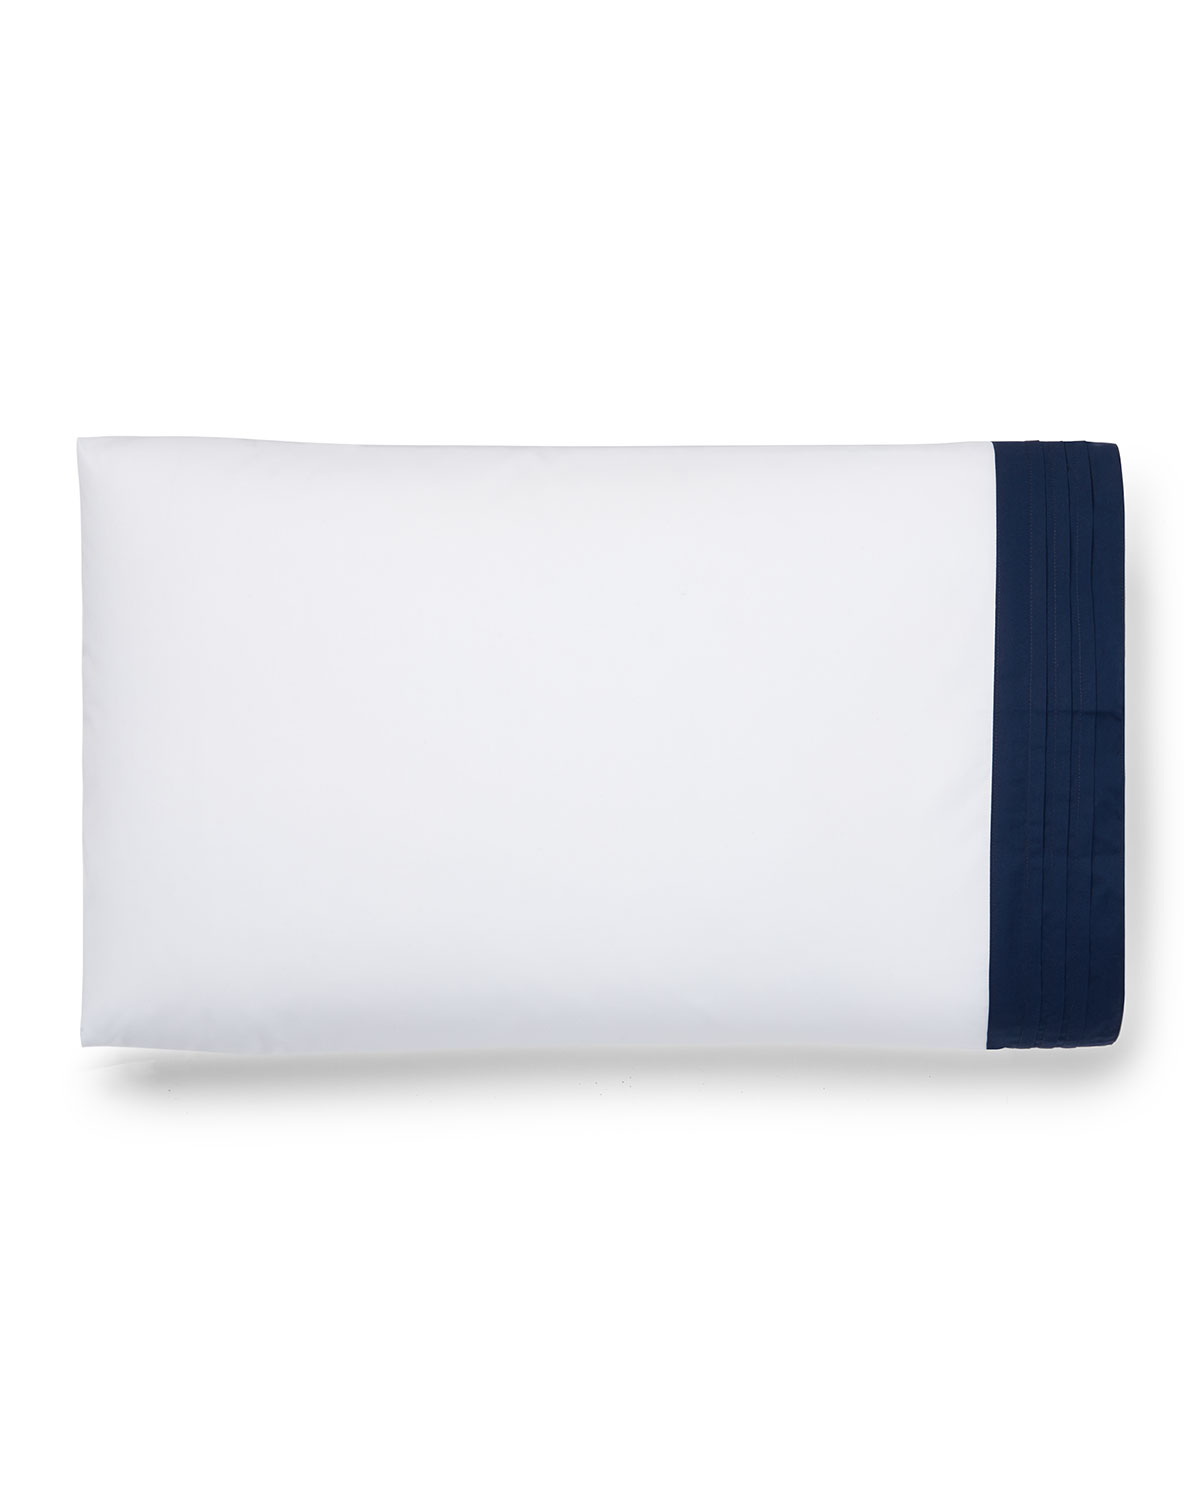 Ralph Lauren Home Wilford Standard Pillowcase